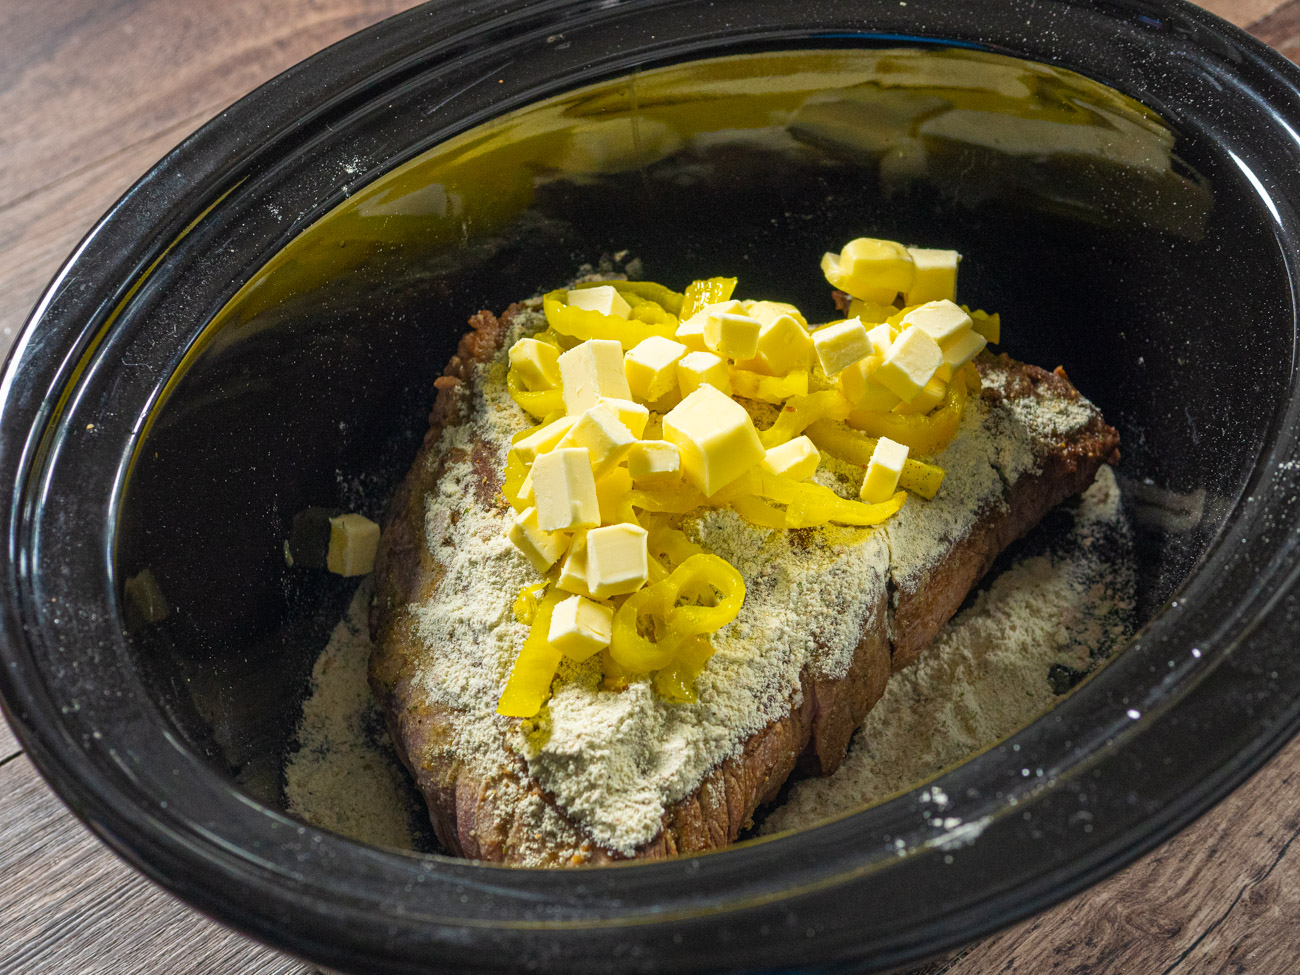 Place meat in bottom of slow cooker and pour soy sauce over meat. Sprinkle dry seasoning mixture on top. Add pepperoncini peppers and butter cubes on top of meat.